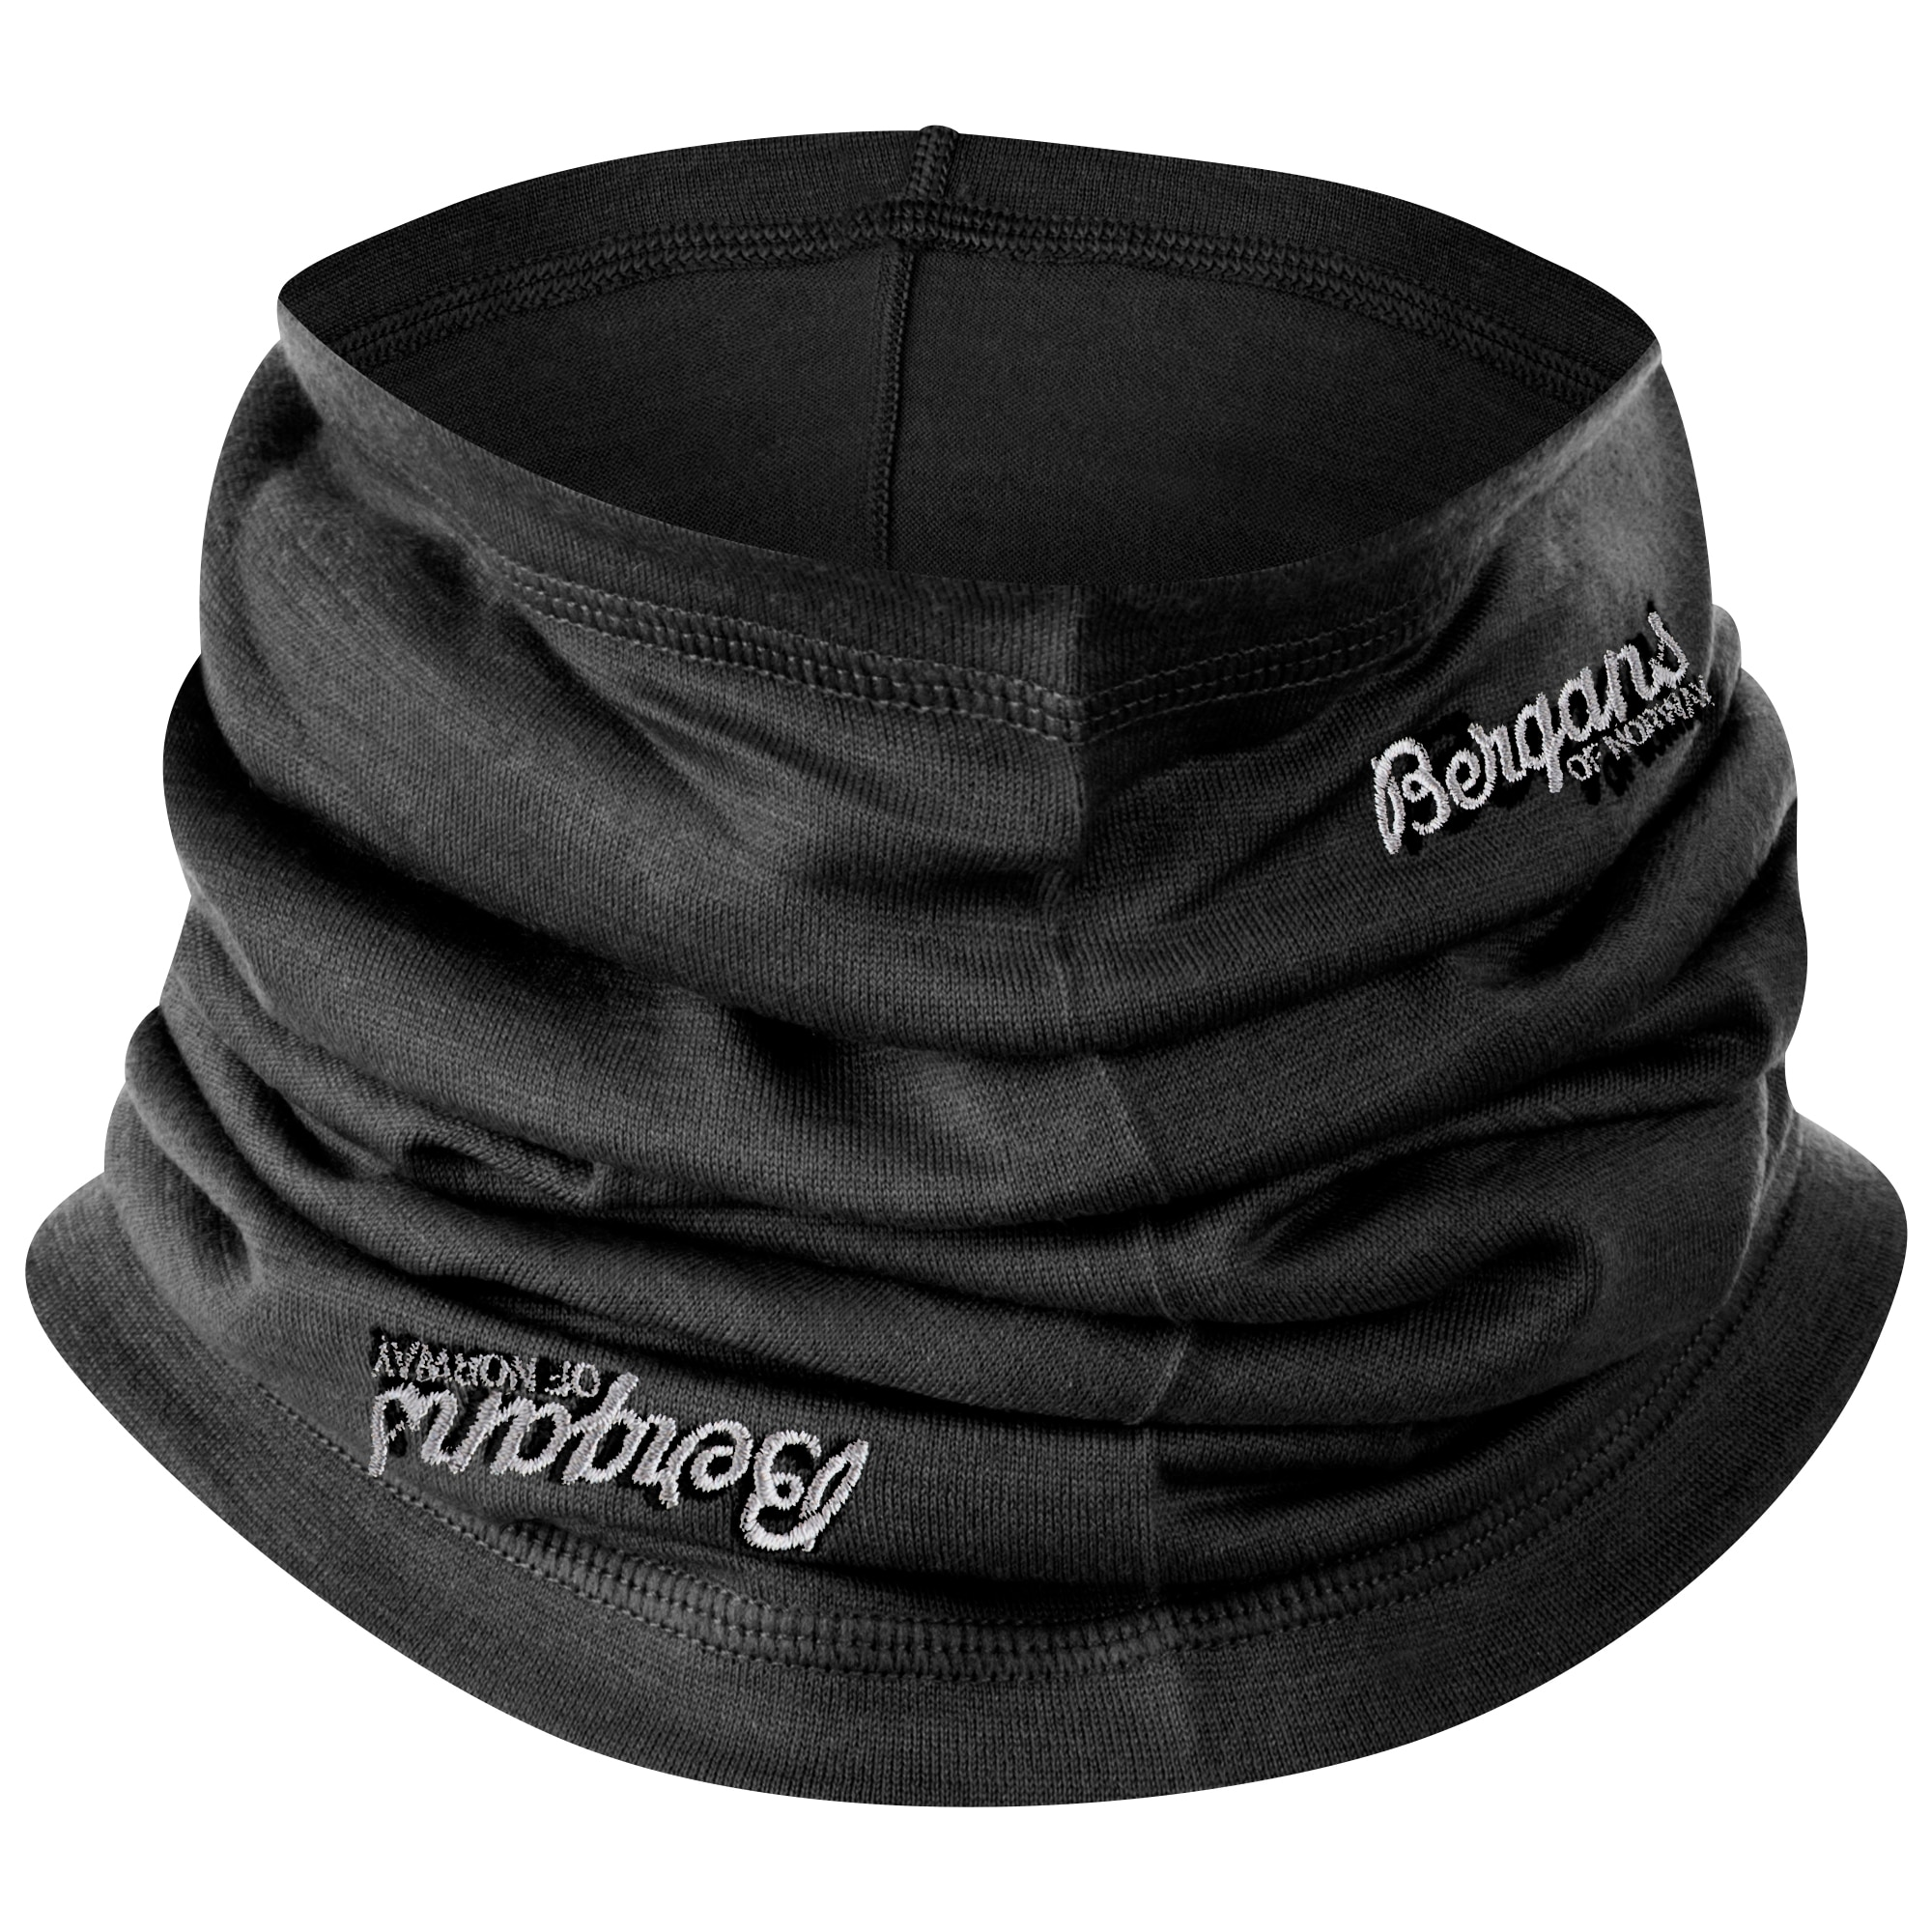 Fjellrapp Neck Warmer